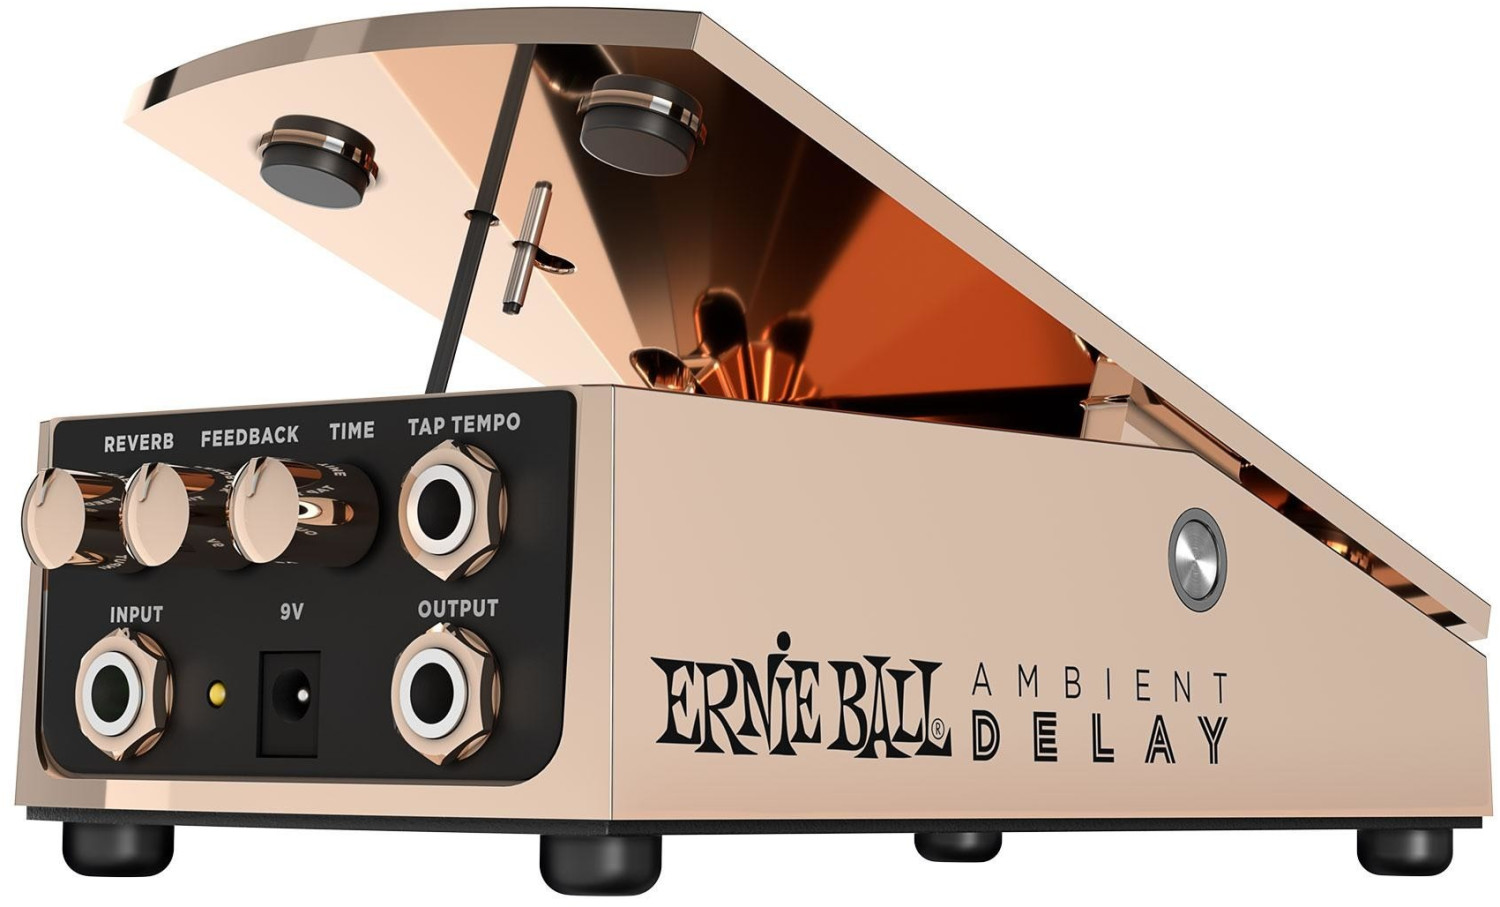 Image of ERNIE BALL Ambient Delay